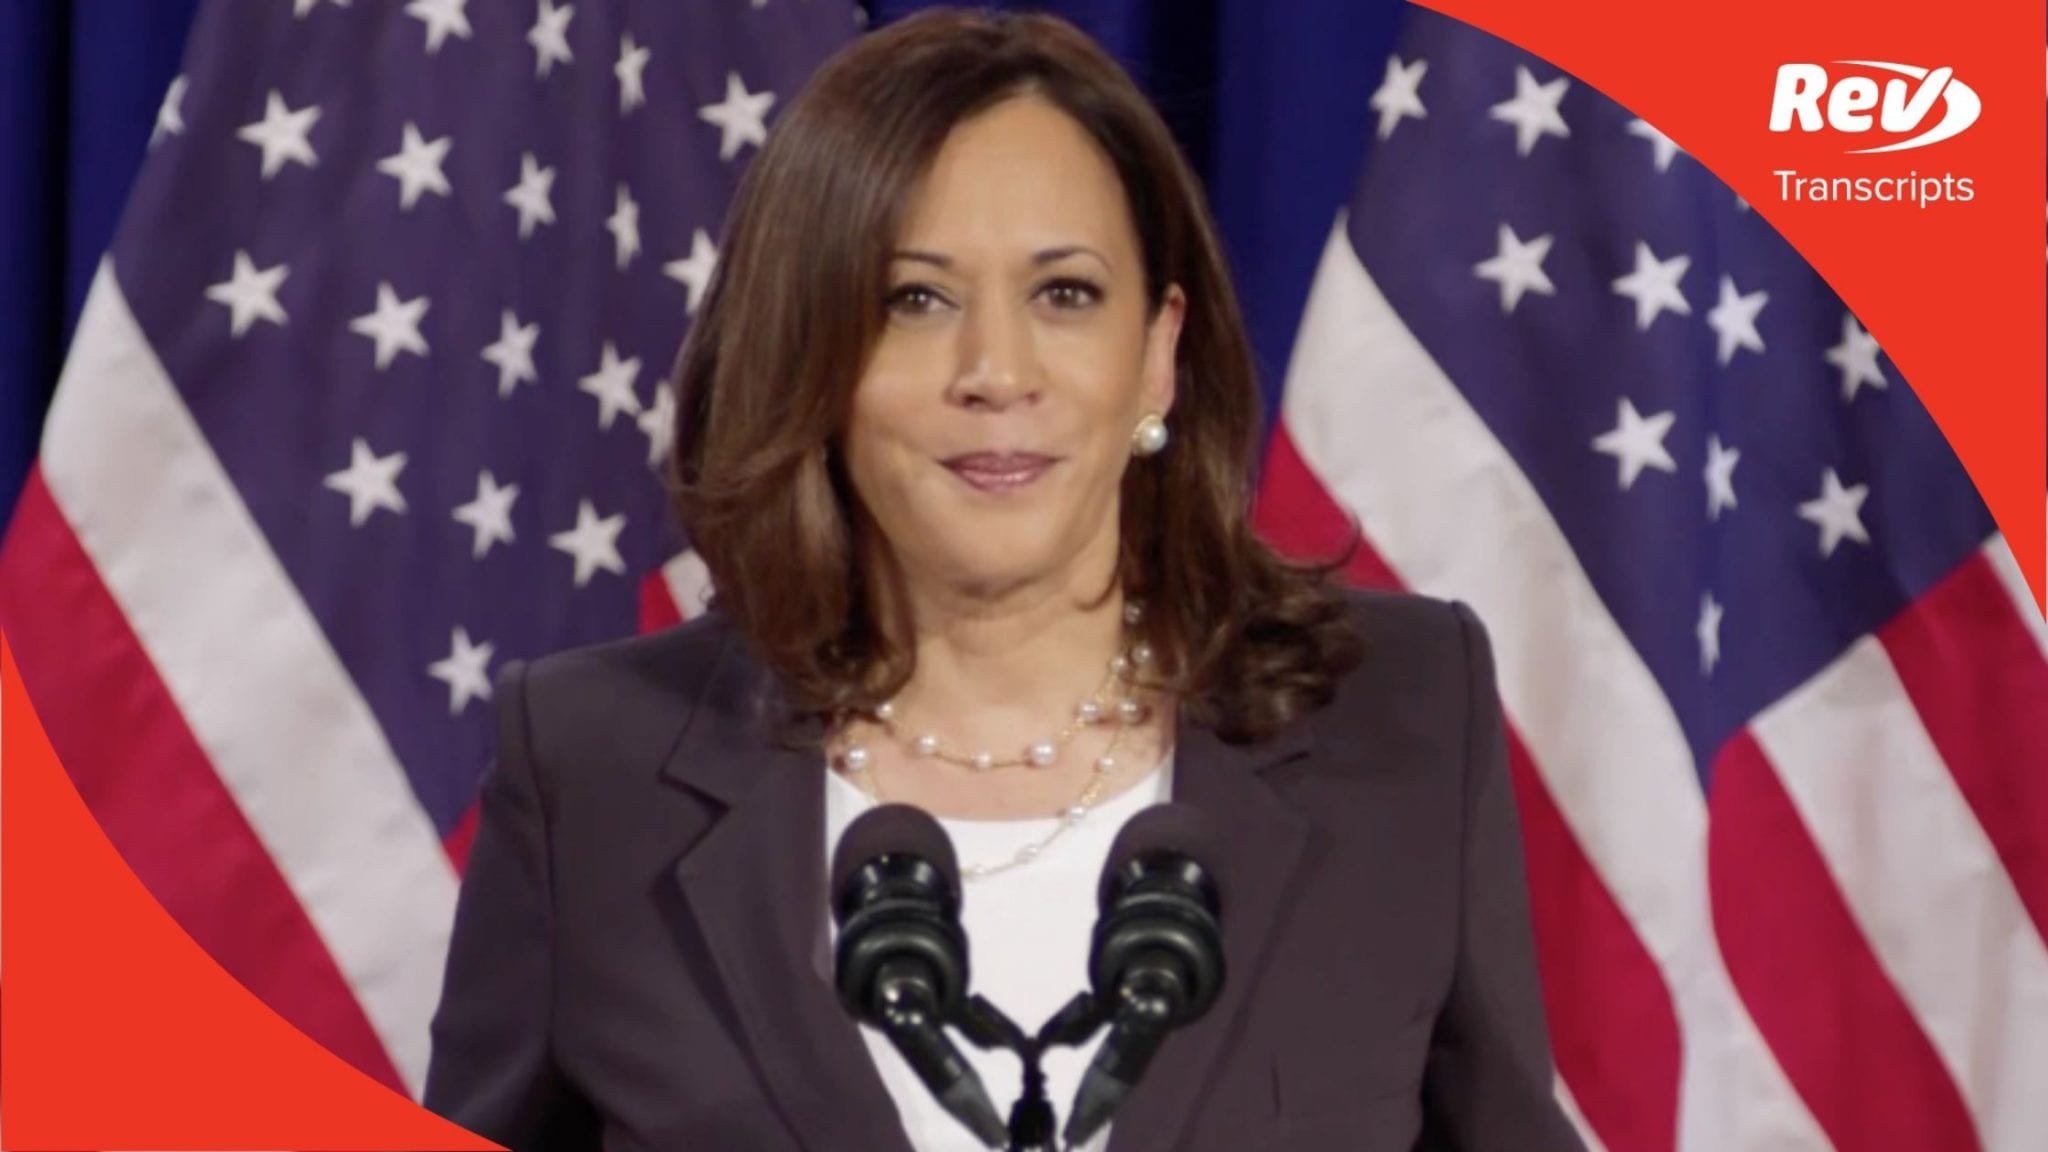 Kamala Harris Speech Transcript August 27: COVID-19 & Economy